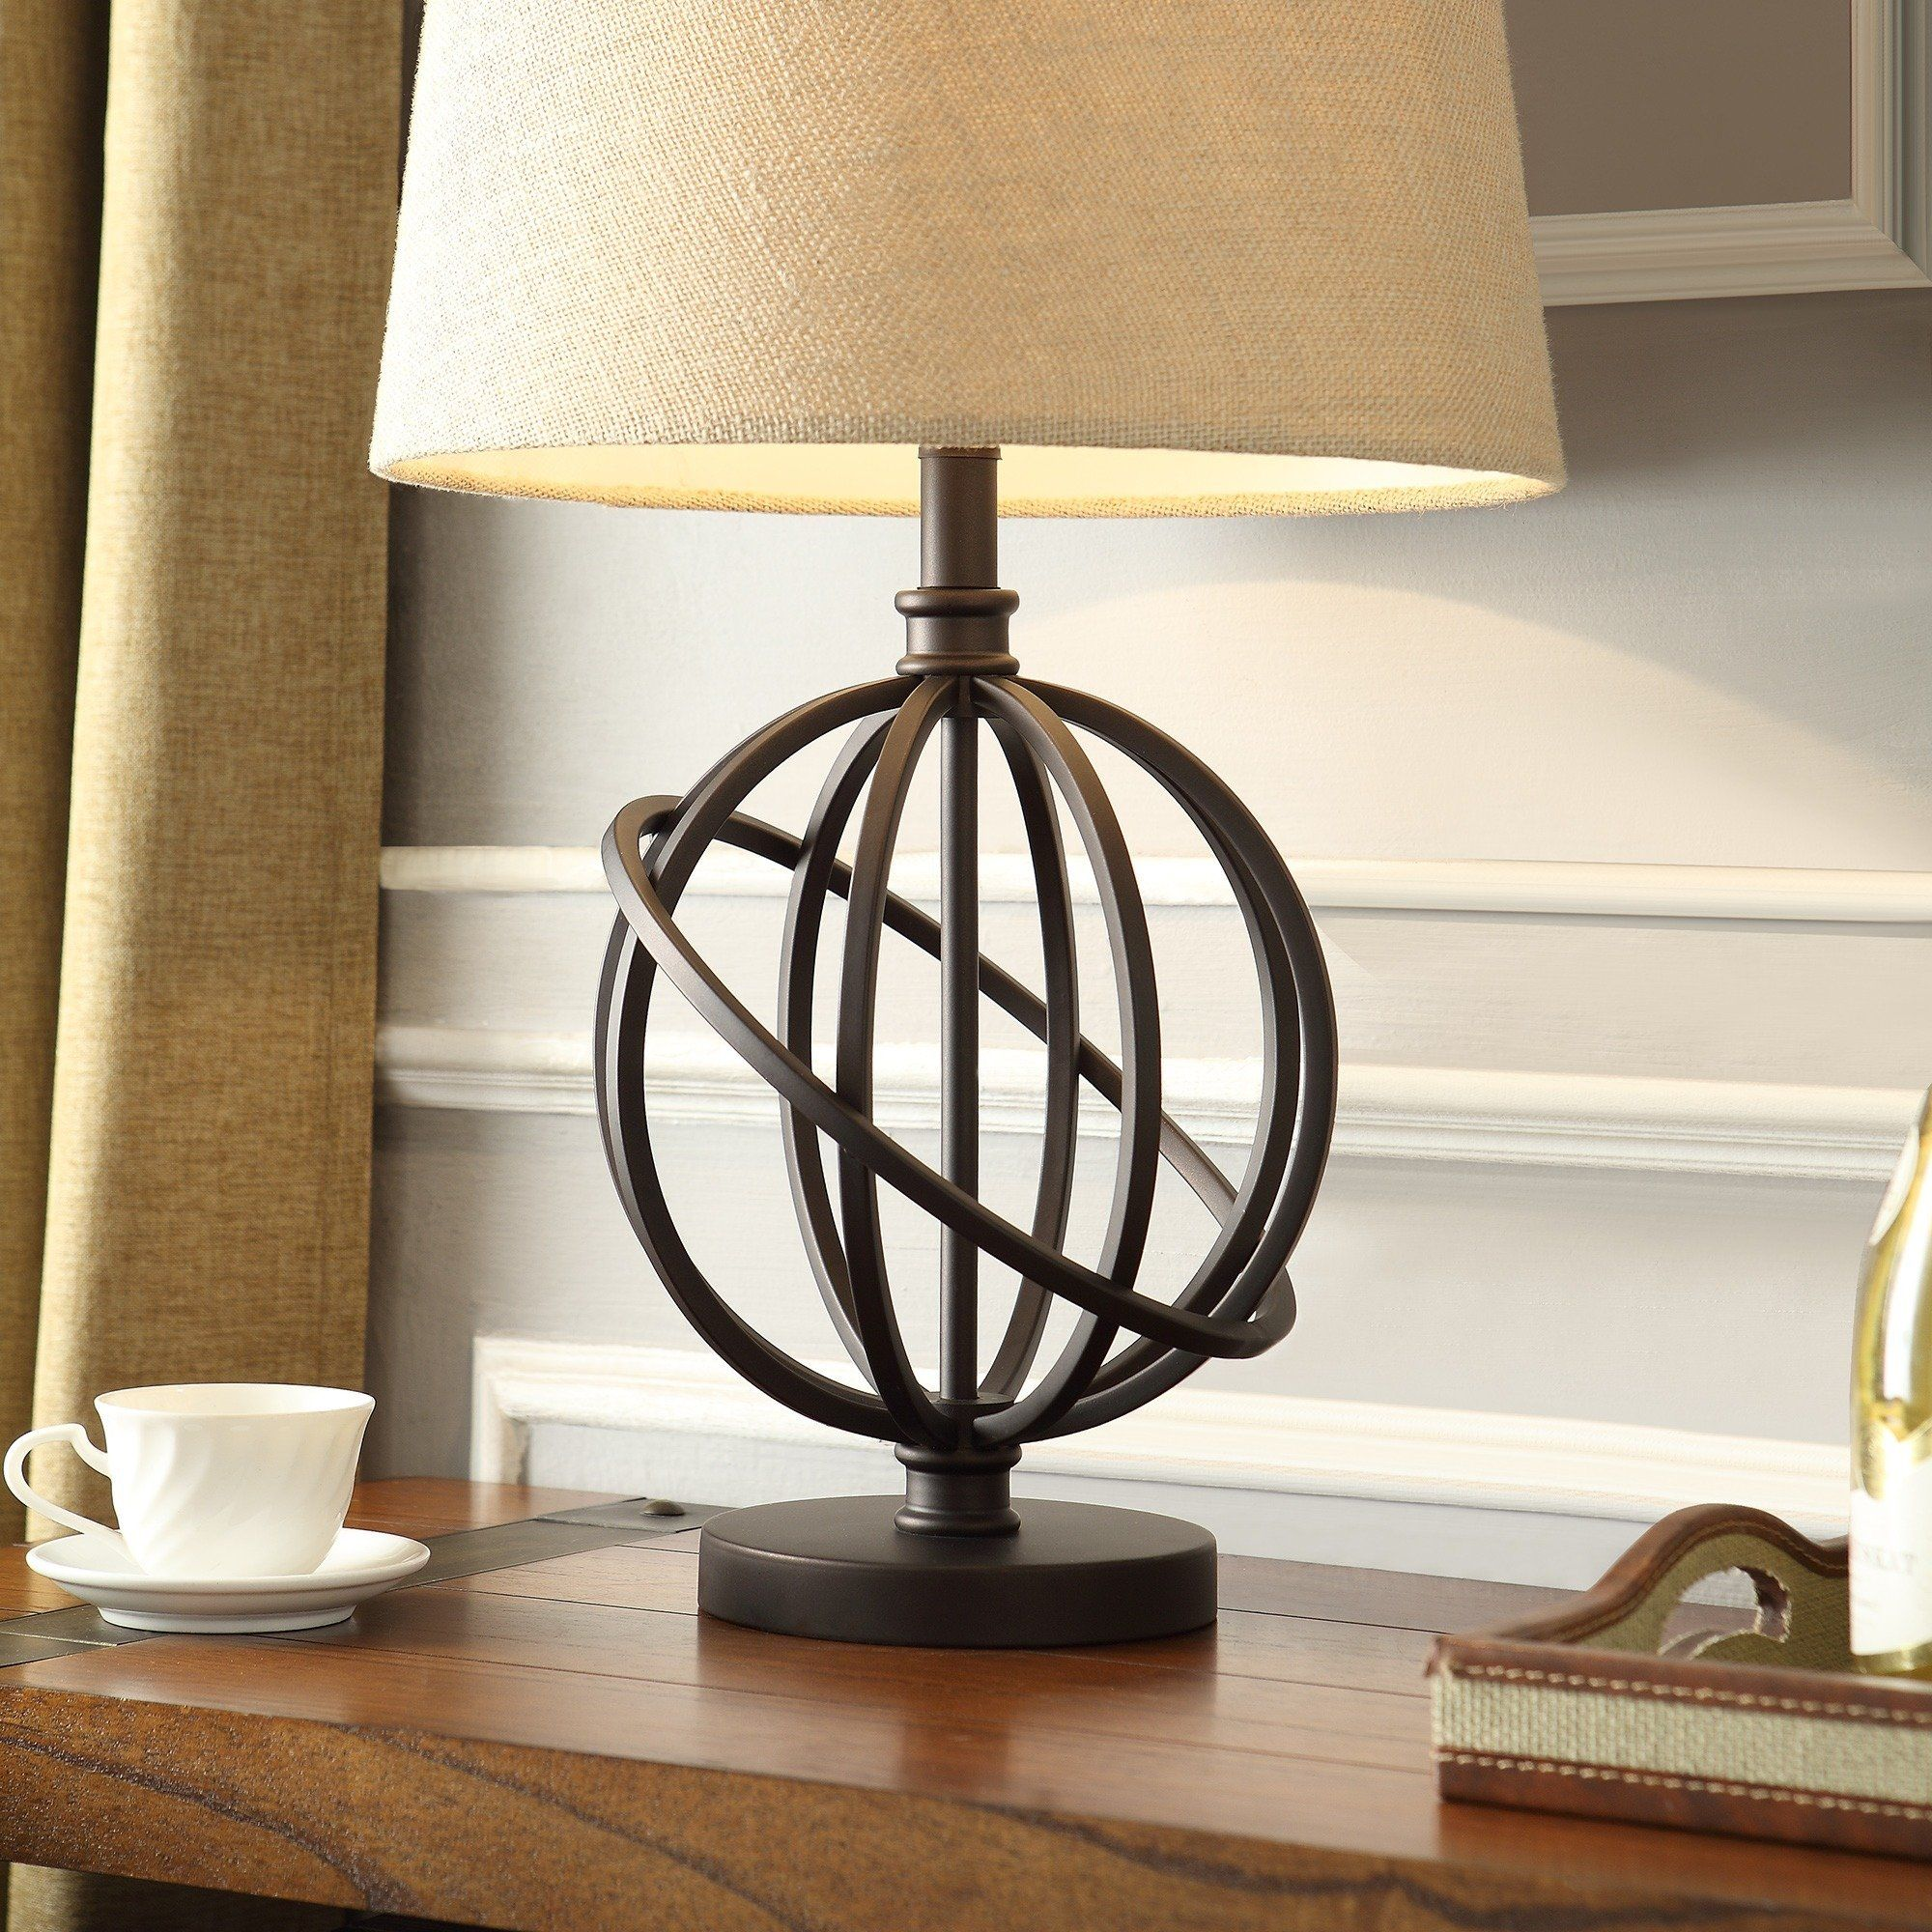 Accent Table Lamp Bronze Metal Orbit Globe. This Beautiful Vintage Modern  Lamp Is Your Best